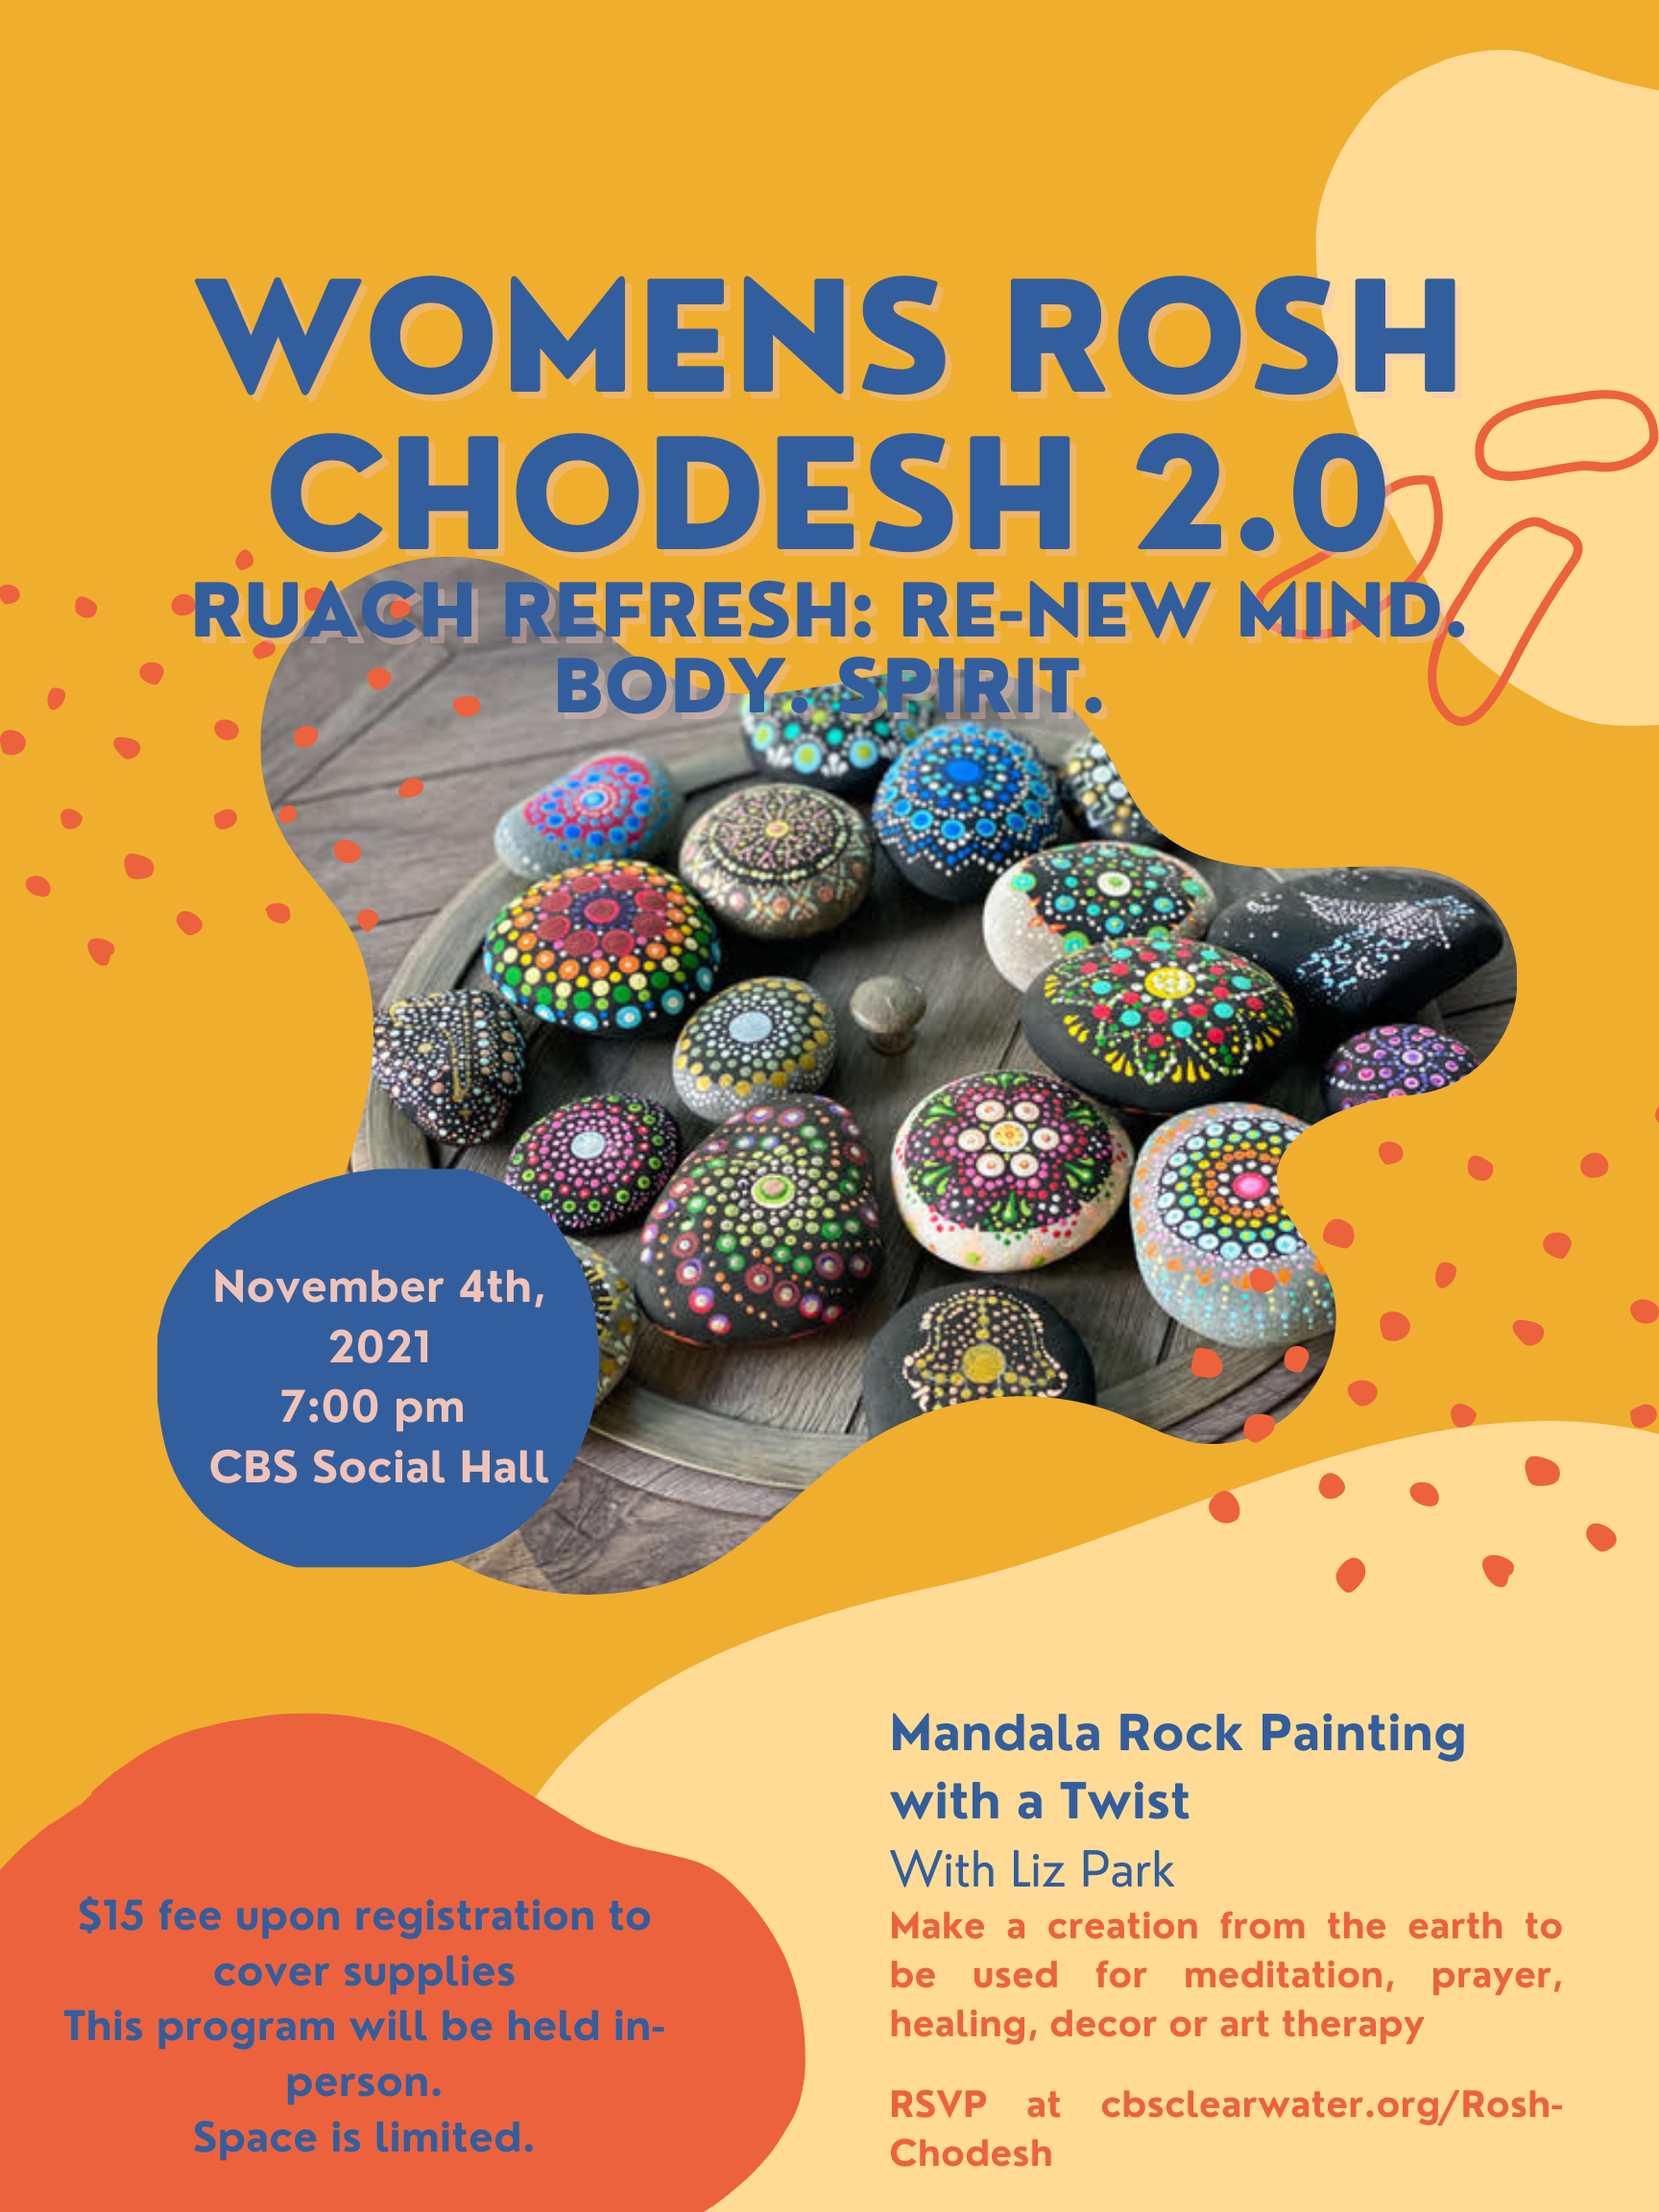 """</a>                                                                                                                                                                                       <span class=""""slider_description"""">Join us for these extraordinary conversations!</span>                                                                                     <a href=""""https://www.cbsclearwater.org/event/rosh-chodesh.html"""" class=""""slider_link""""                             target=""""_blank"""">                             Click here to RSVP                            </a>"""